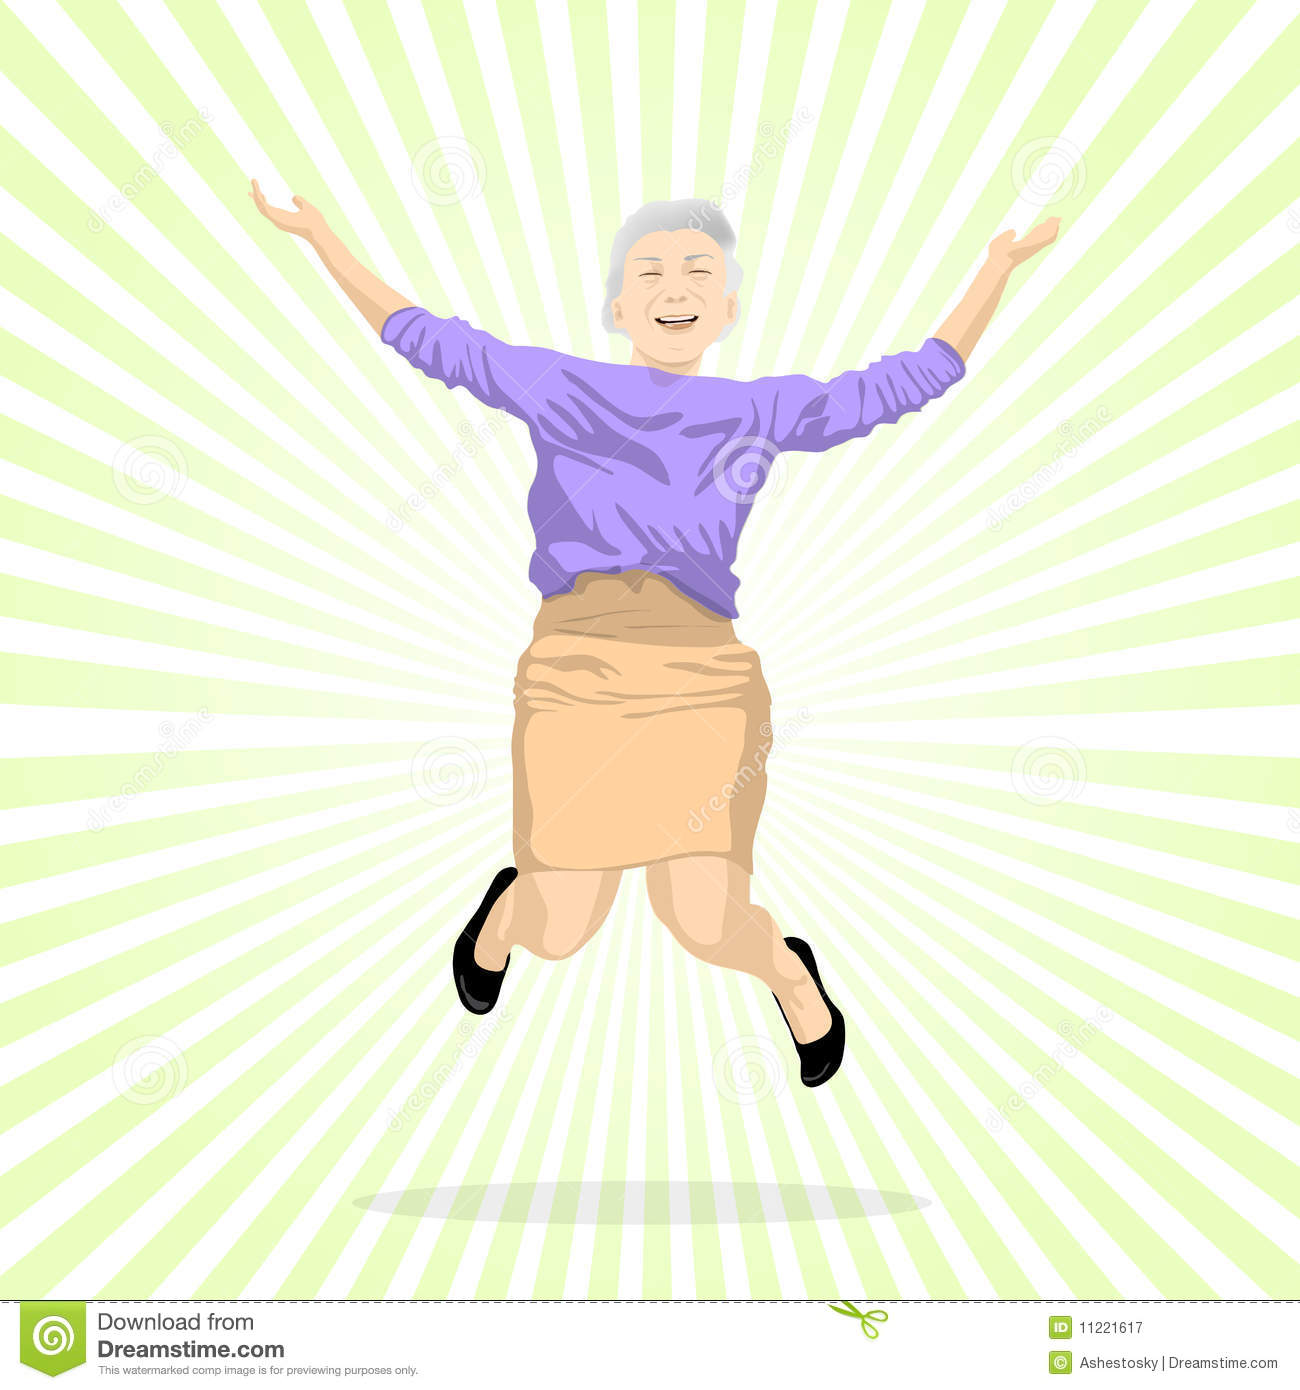 Image result for free pictures of jumping for joy